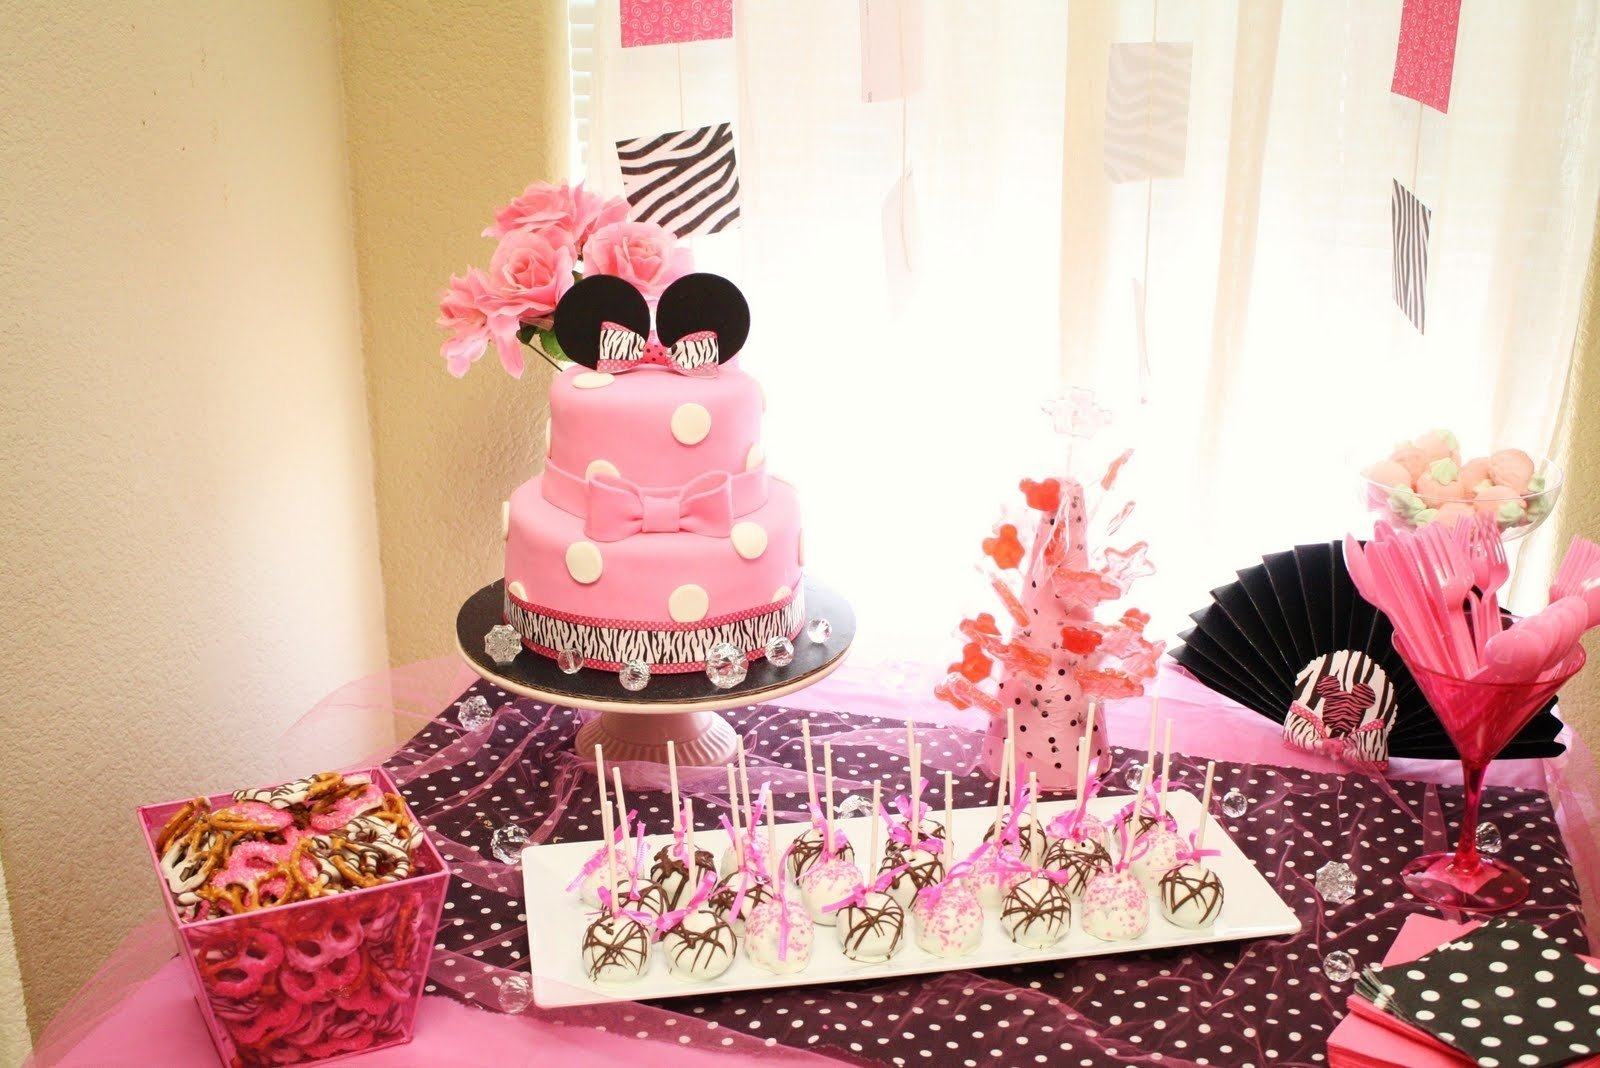 10 Fashionable Baby Minnie Mouse 1St Birthday Party Ideas minnie mouse party ideas pinterest minnie mouse decoration ideas 2020